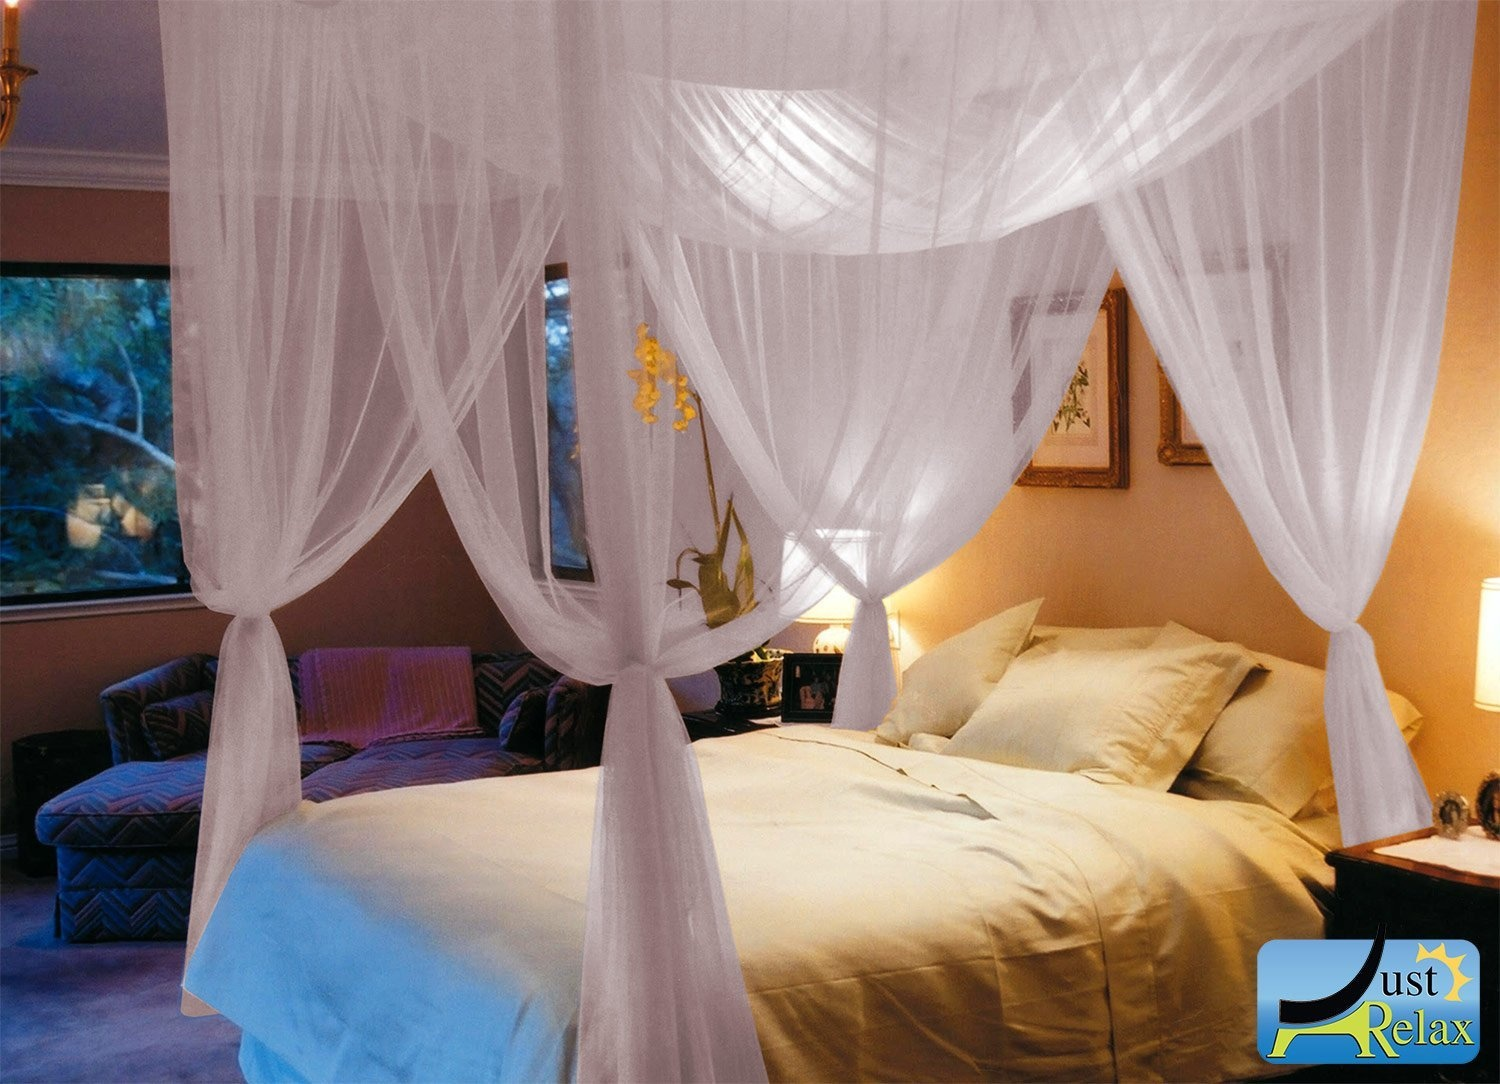 Just Relax Four Corner Post Elegant Mosquito Net Bed Canopy Set